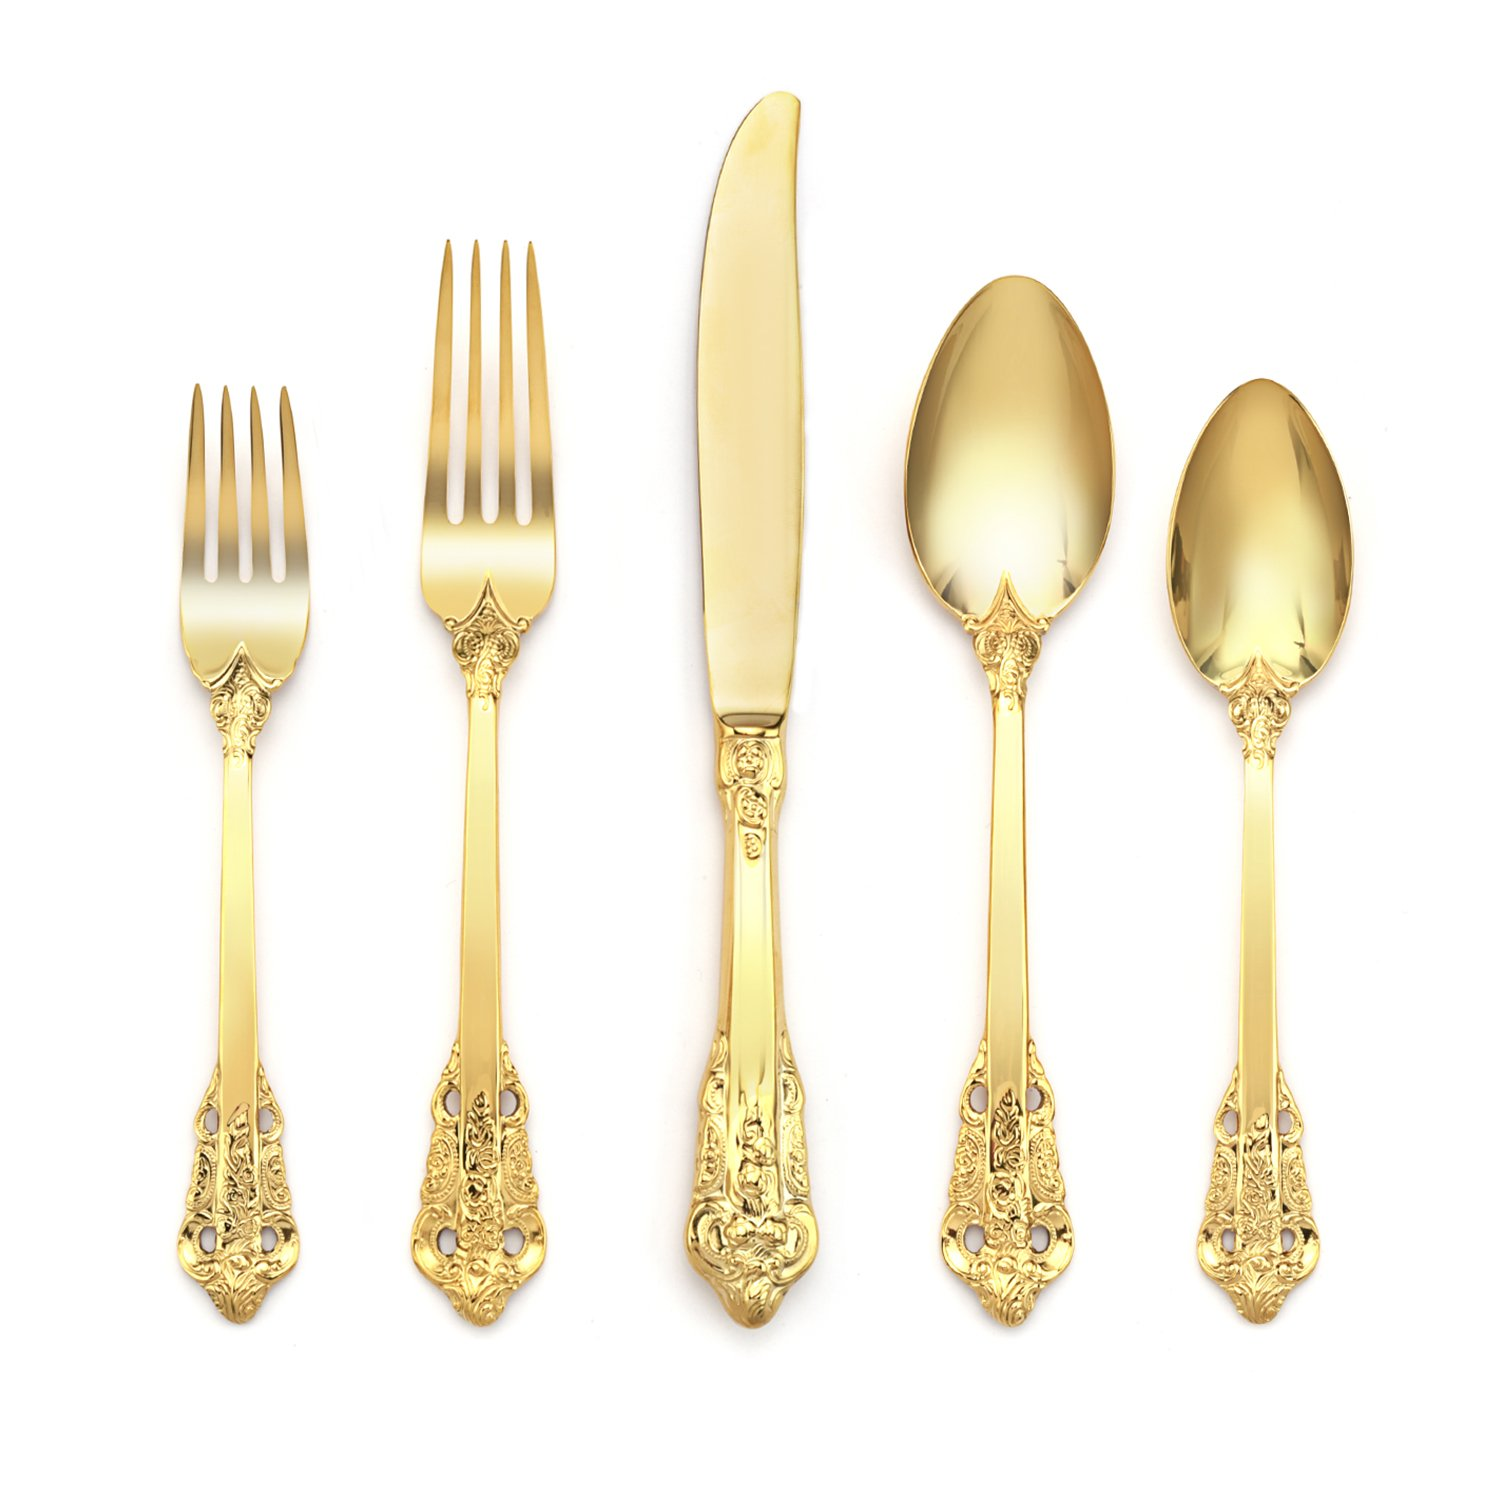 Deacory Elegant Flatware 5 Piece Service for One Stainless Steel 18/10 Shiny Mirror Polish Gold Set Wedding Event Gift Restaurant Use